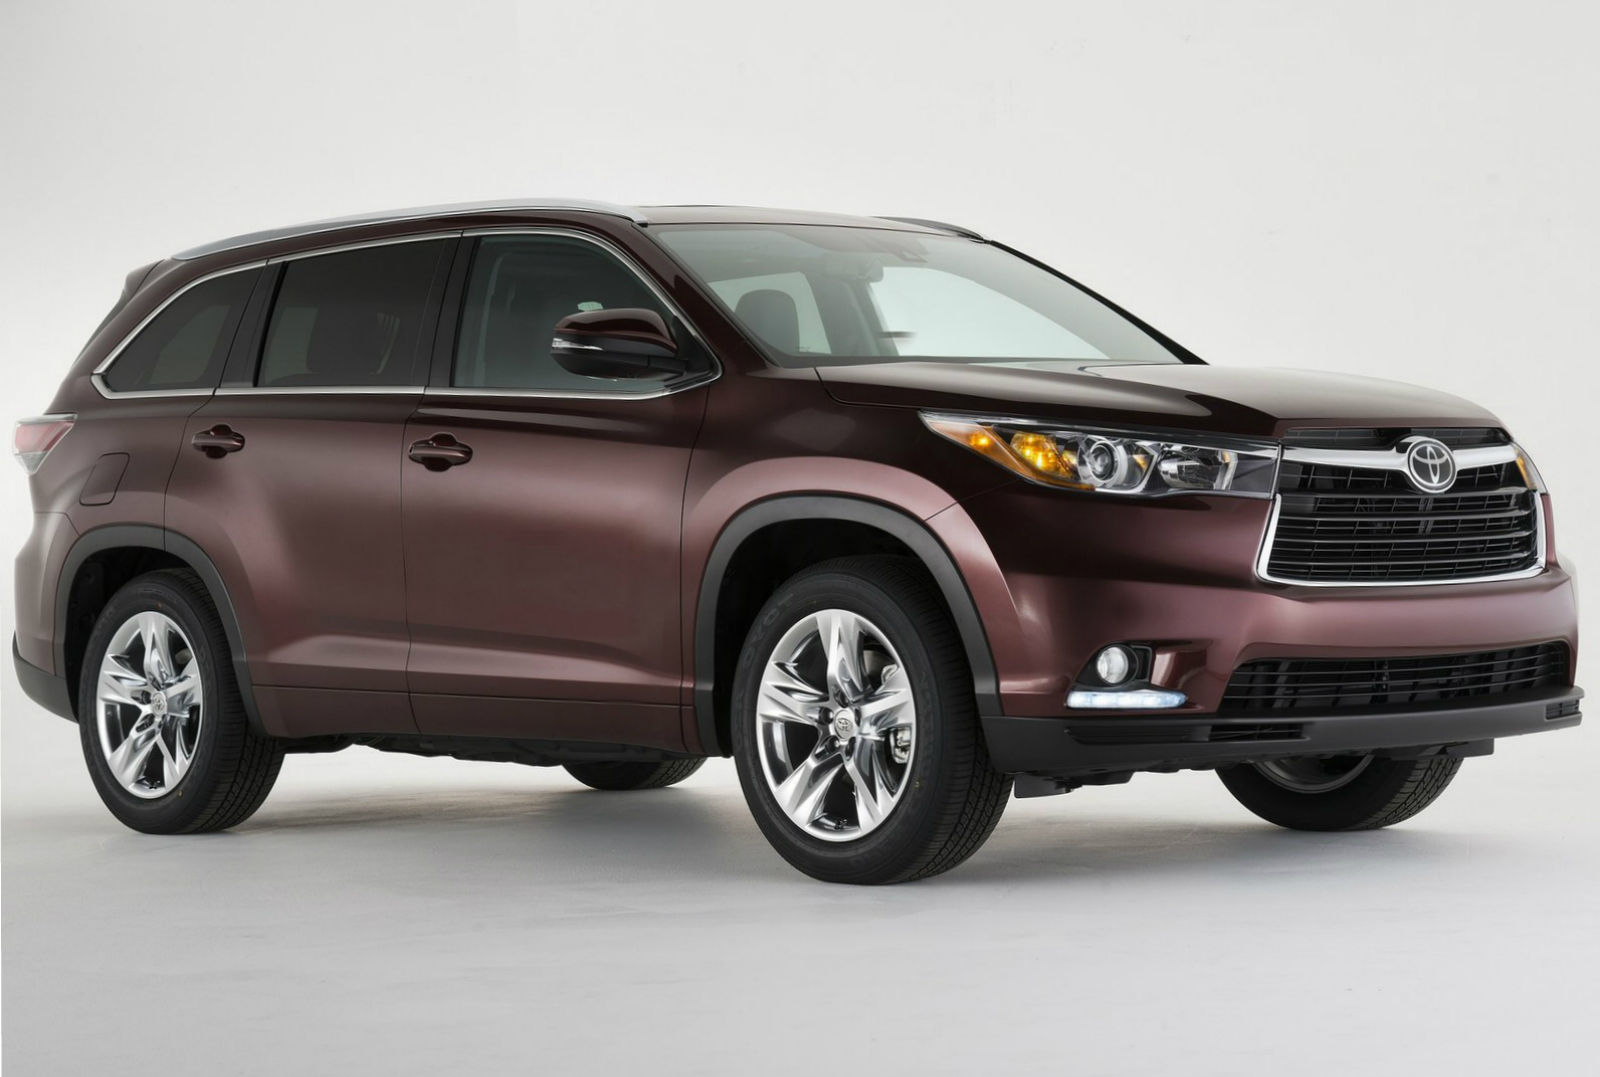 toyota highlander 2014 reviews toyota highlander 2014 car reviews. Black Bedroom Furniture Sets. Home Design Ideas